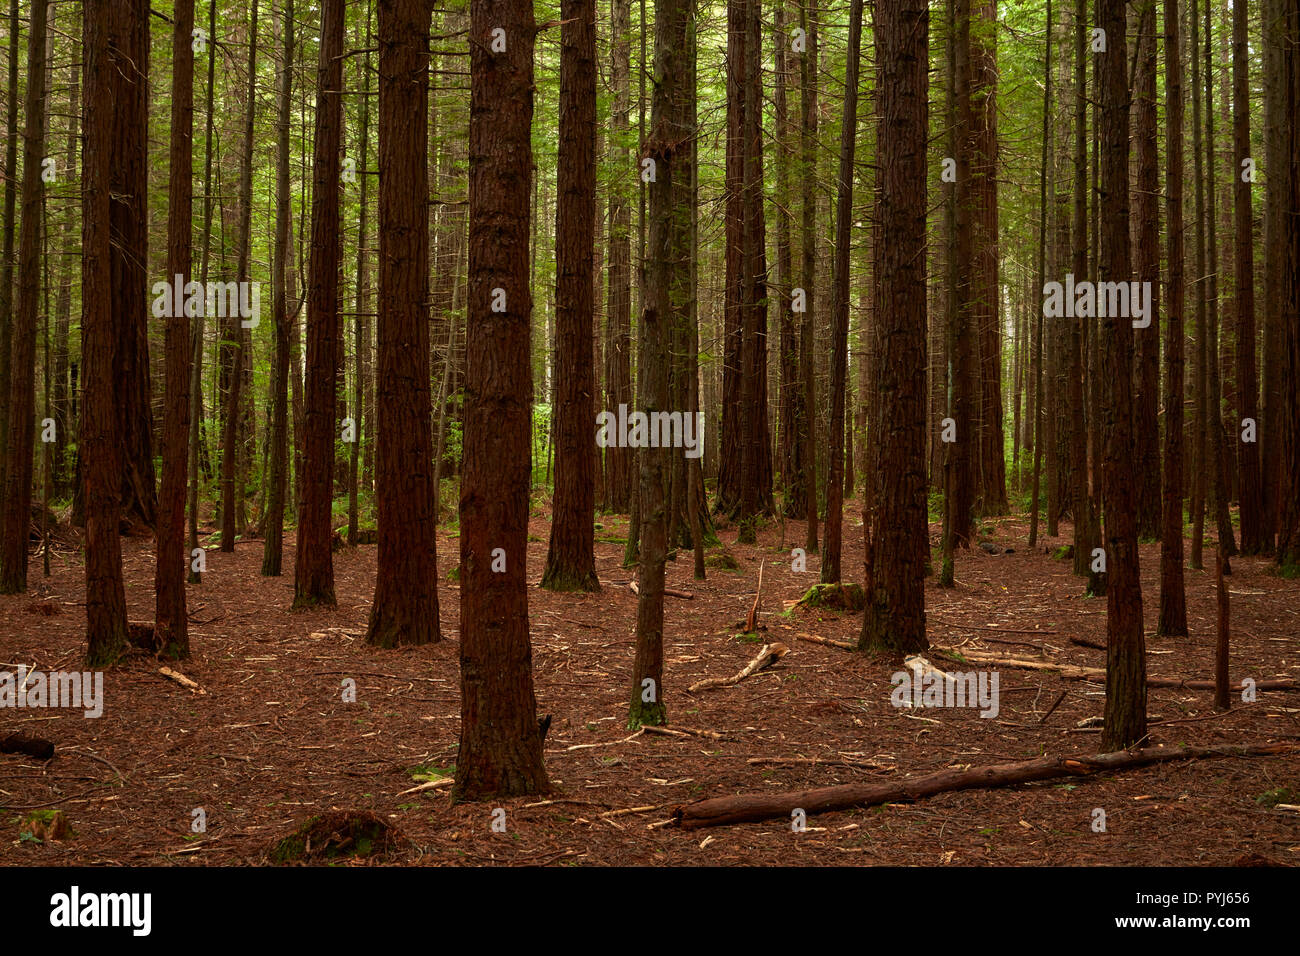 Redwood tree trunks, The Redwoods (Whakarewarewa Forest), Rotorua, North Island, New Zealand Stock Photo